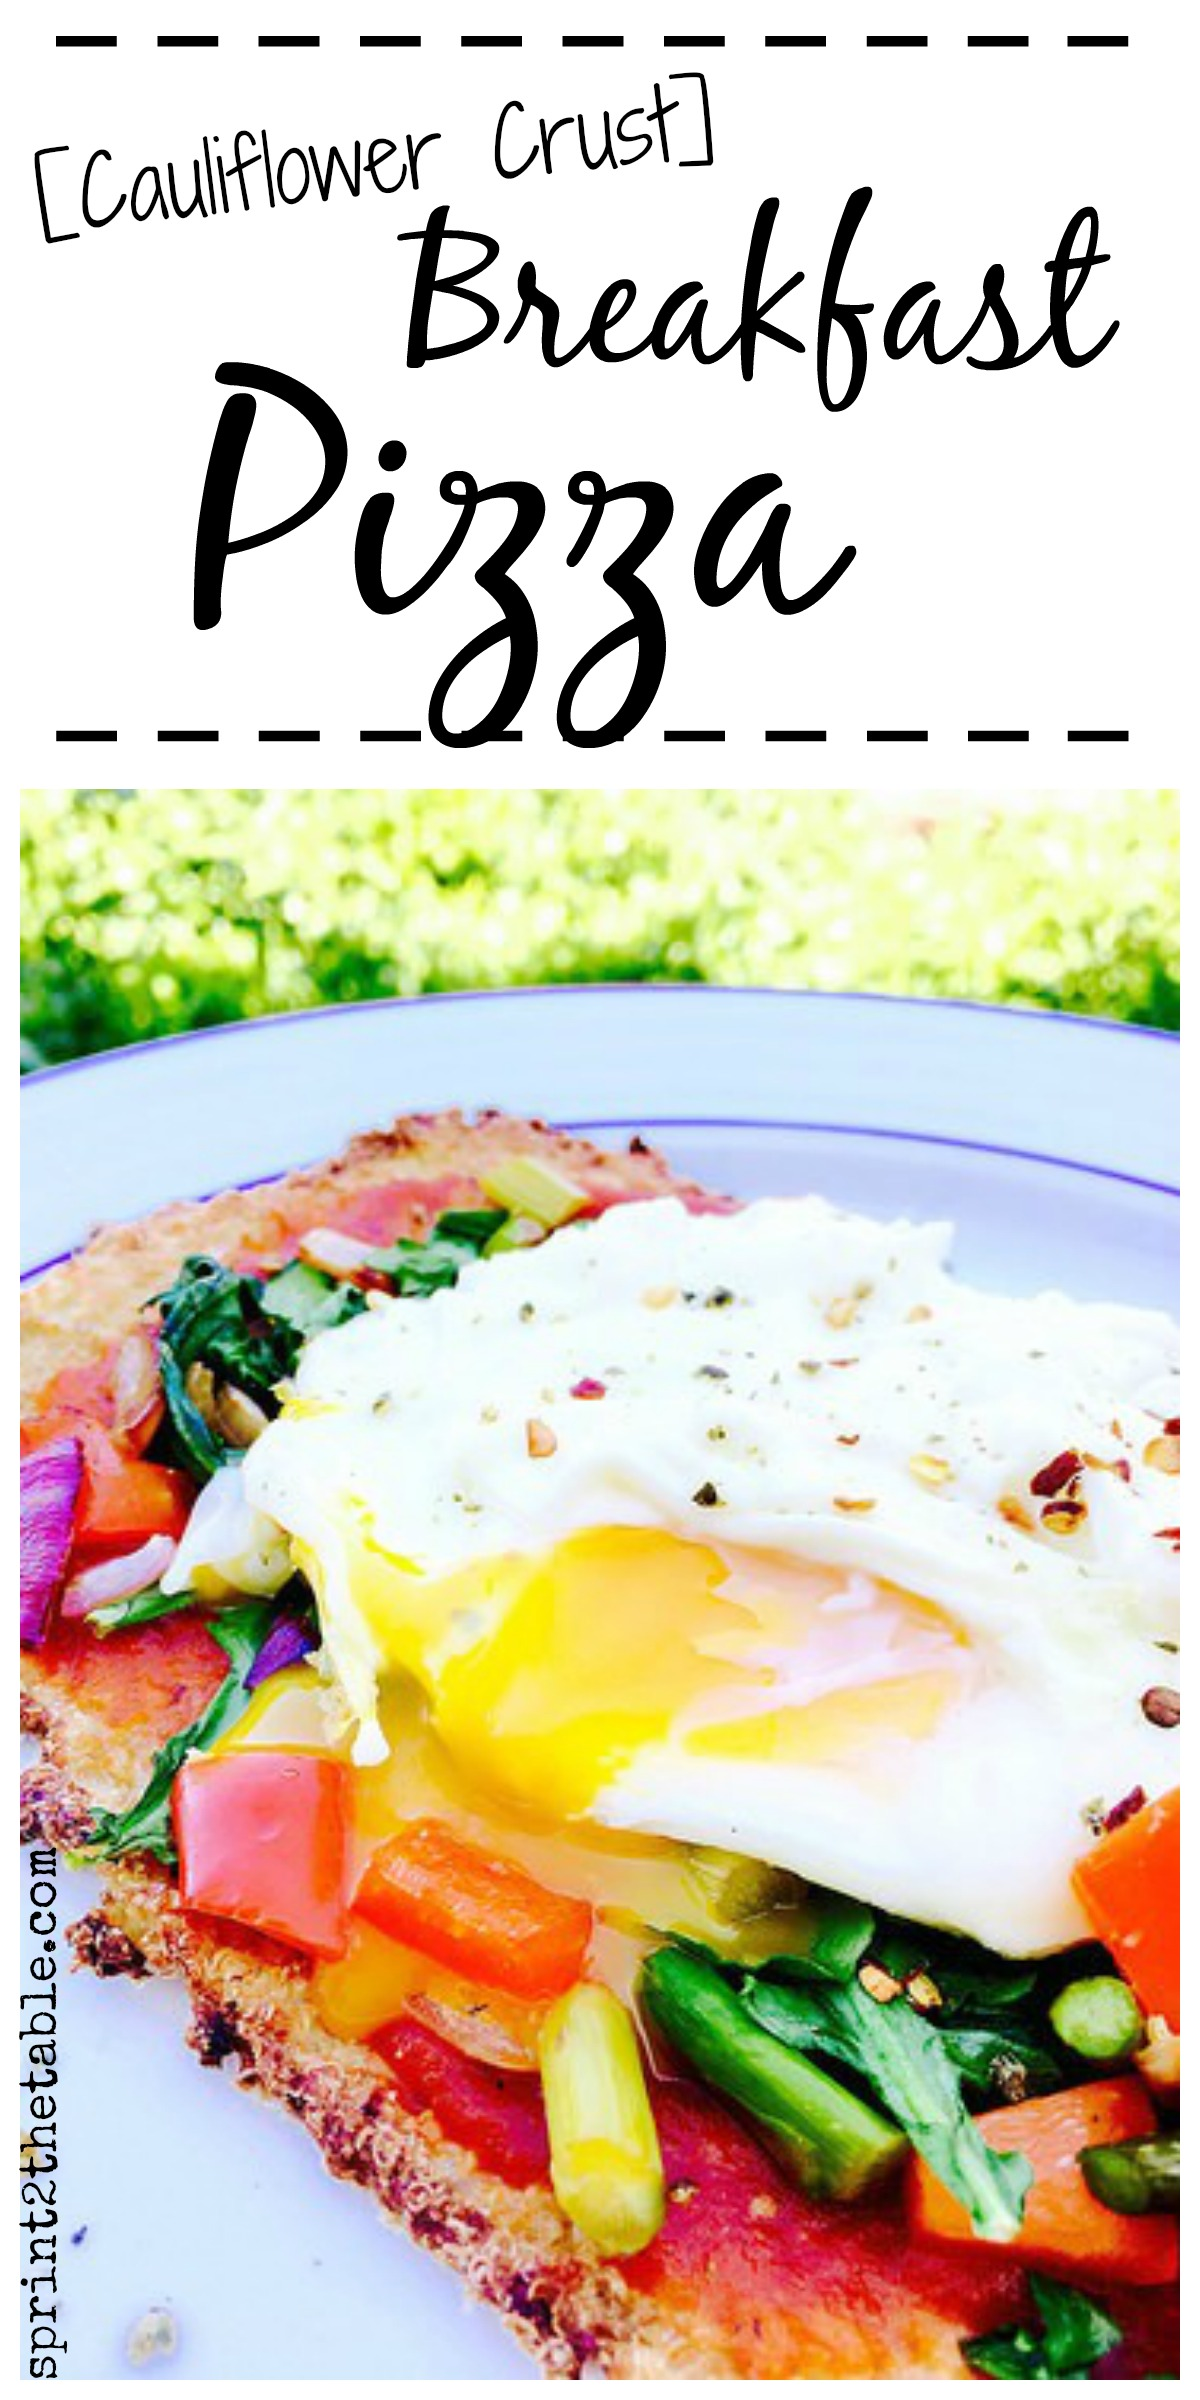 Cauliflower Crust Breakfast Pizza - delicious, gluten-free, and dairy-free... put an egg on it for instant brunch!